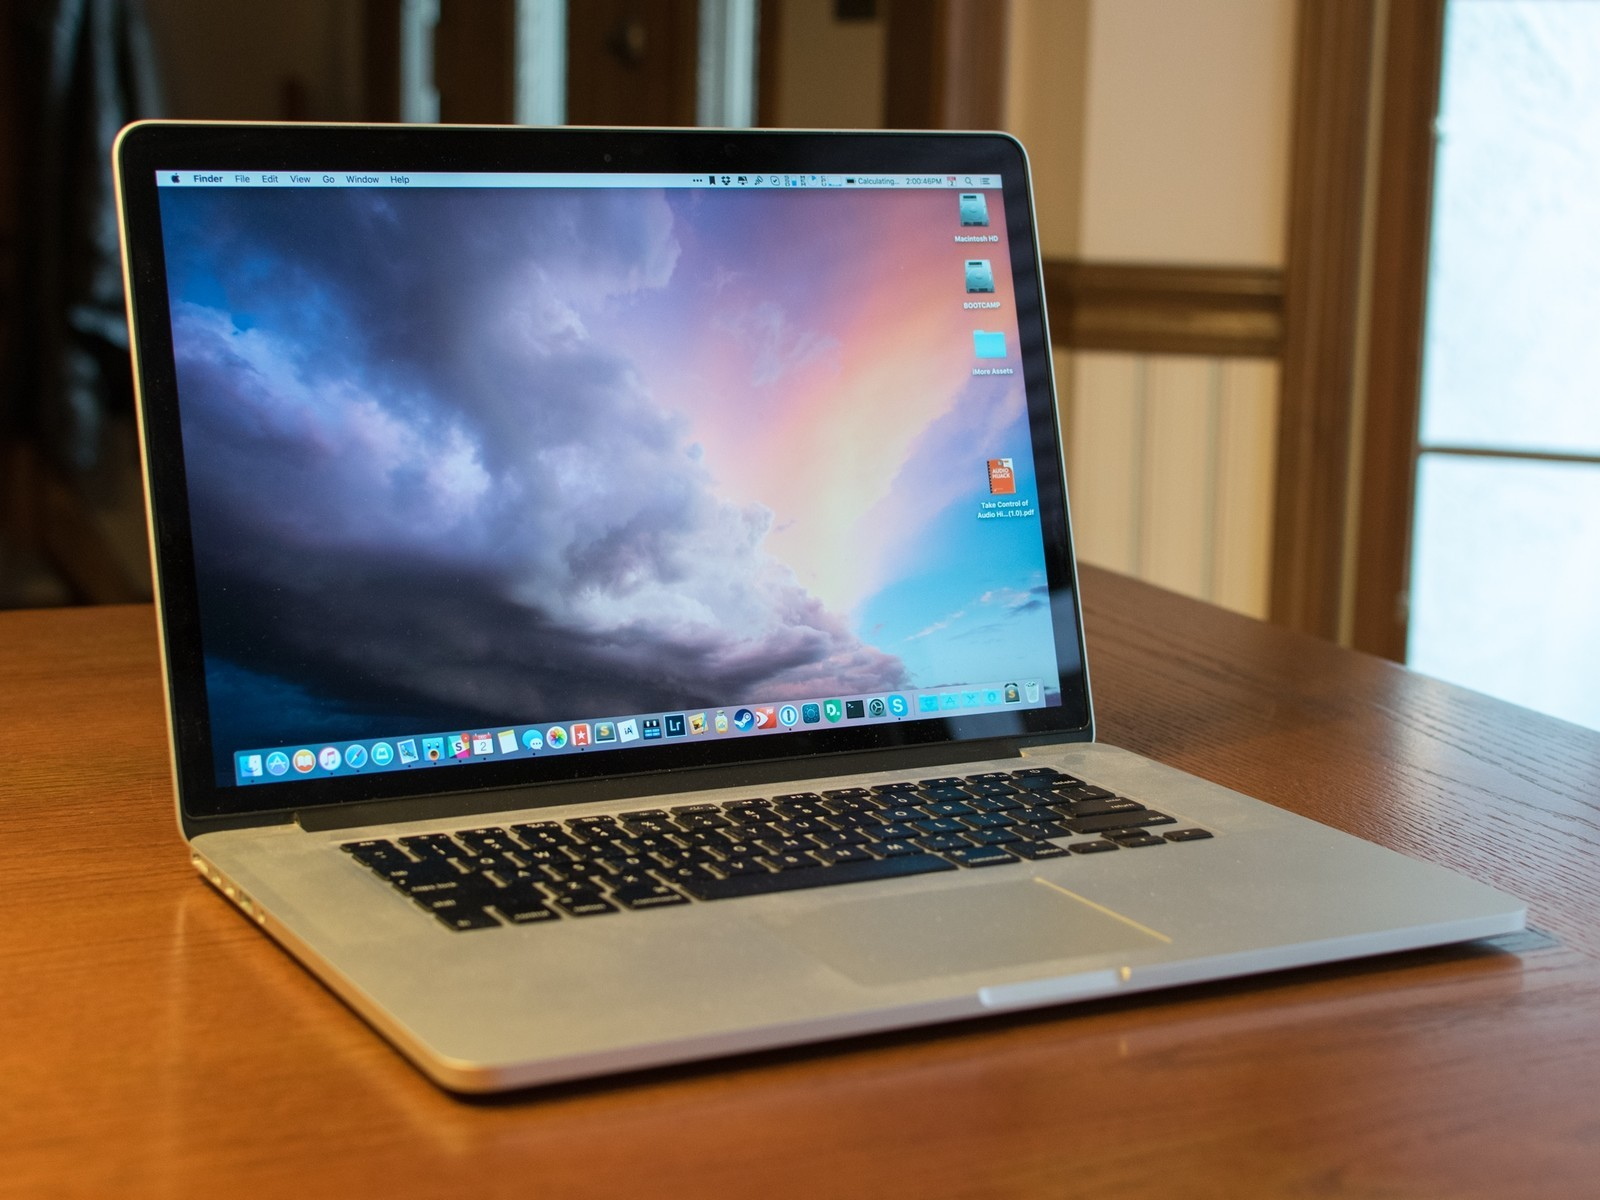 How to learn to use my new MacBook Pro - Quora